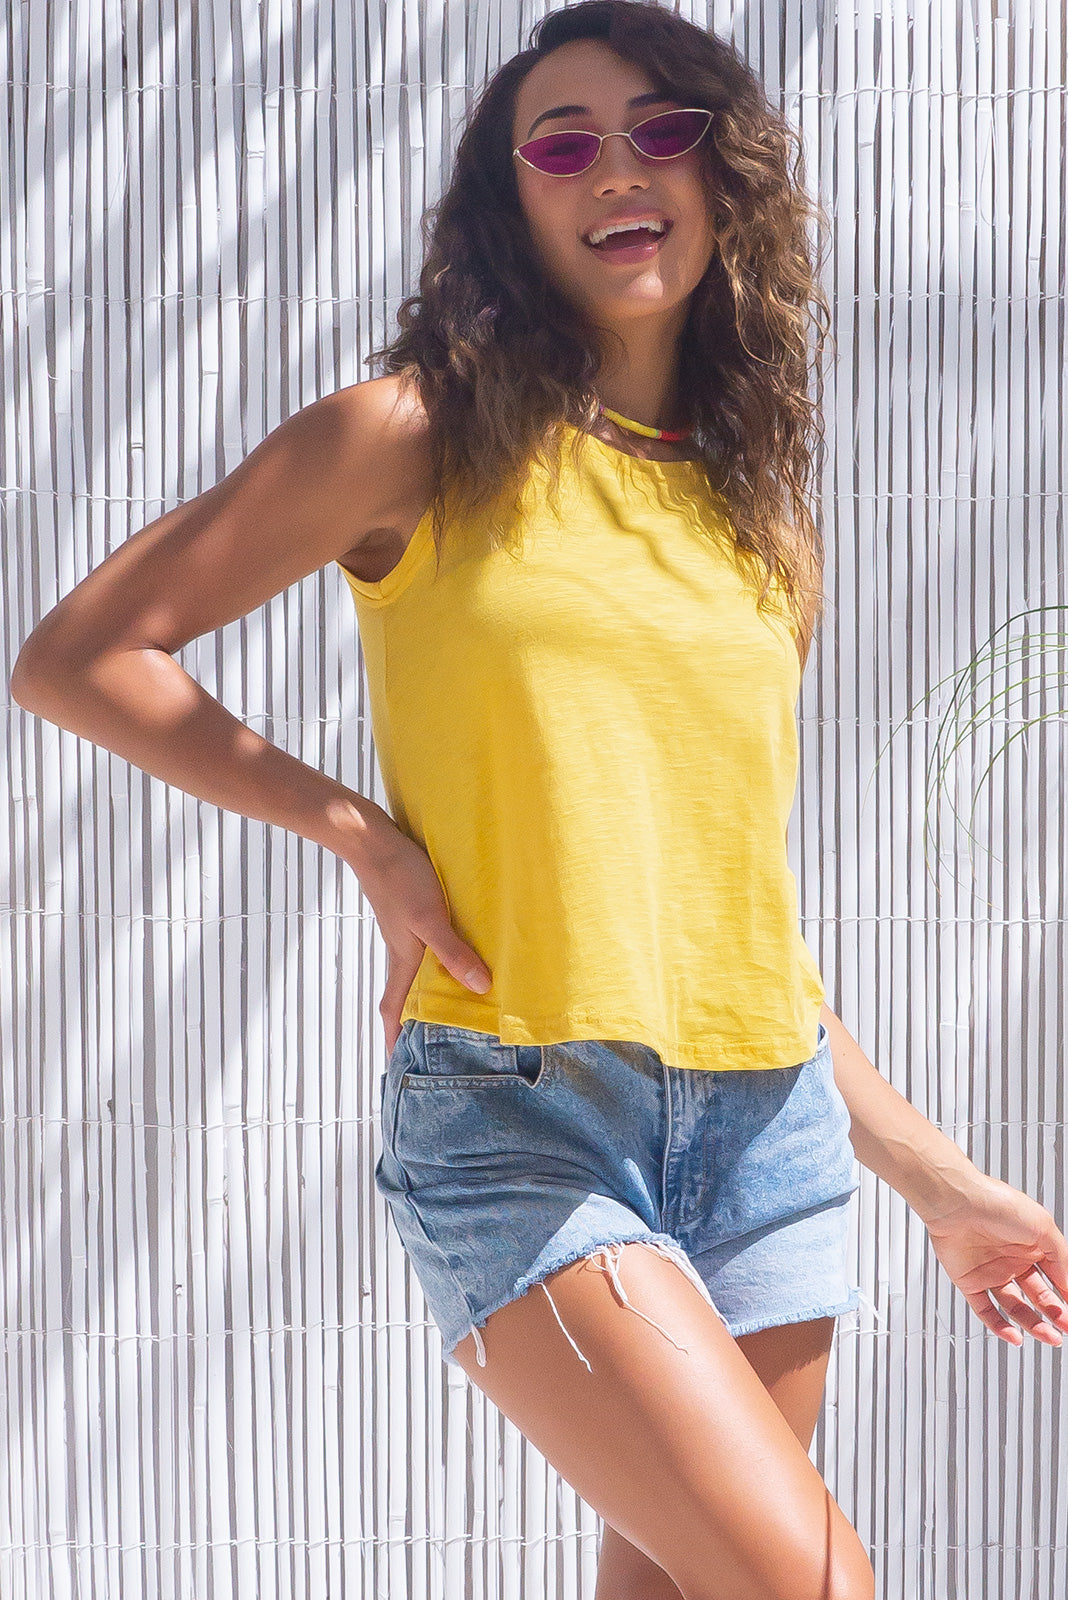 The Soleil Yellow Tank Top is a classic tank top featuring slim fit over the bust, relaxed over the waist & hips and 55% cotton, 45% polyester  in bright sunshine yellow colour.